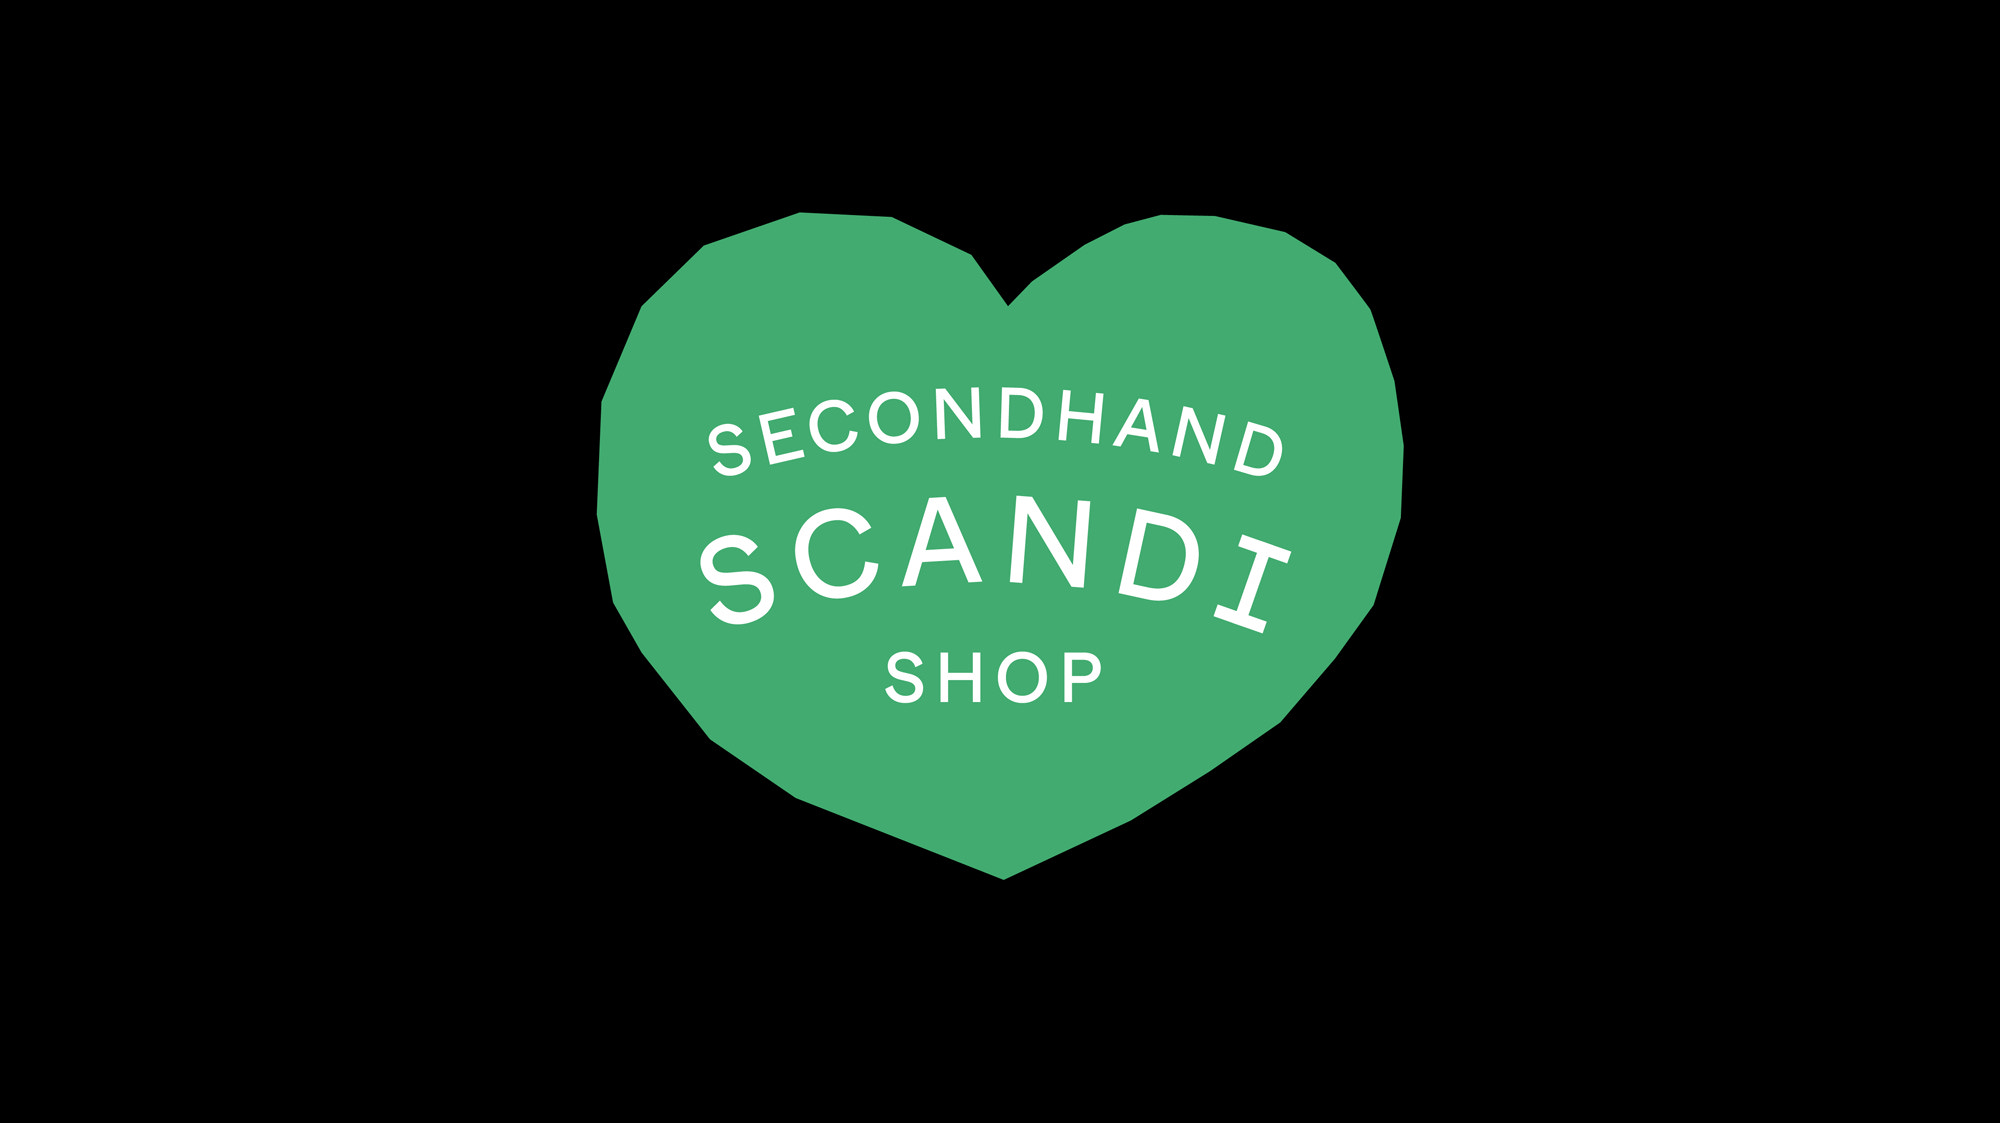 the scandi shop sub brand badge